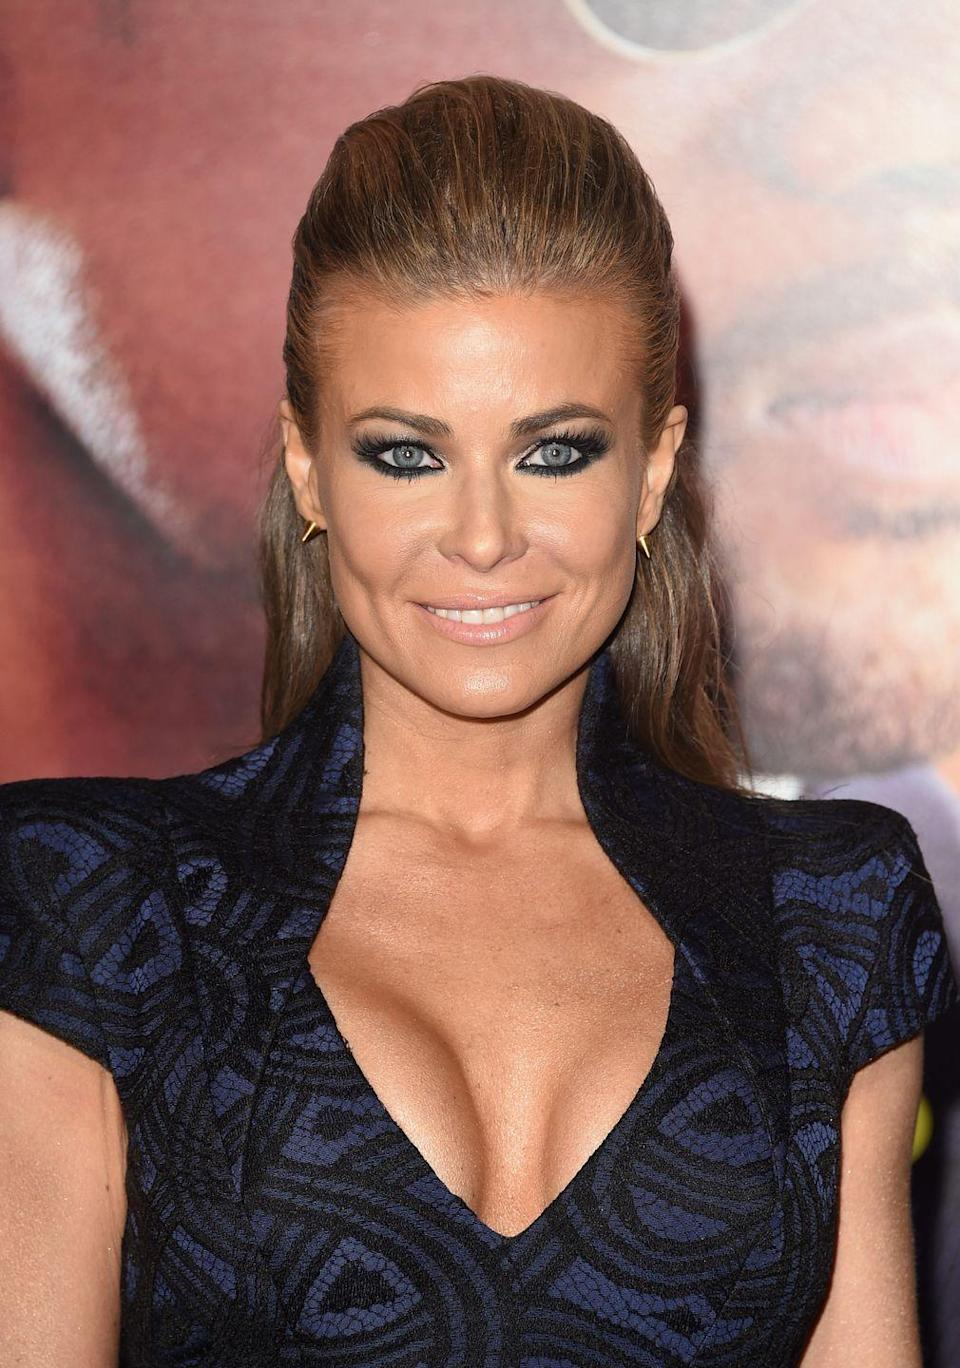 """<p><strong>Real name: </strong>Tara Leigh Patrick<br></p><p>Carmen changed her birth name in 1991 after meeting Prince, <a href=""""https://www.yahoo.com/entertainment/blogs/music-news/how-prince-coined-carmen-electra-s-stage-name-005417834.html?guccounter=1&guce_referrer=aHR0cHM6Ly93d3cuZ29vZ2xlLmNvbS8&guce_referrer_sig=AQAAAJRNxhOVkhZD_-X07drAGtr_j2GPo_bzOZQ1jSzGhseJEnWeMz0ise1WsNujV4MwoH9-FmHGQon5wDEGMCoOXx3jkupfTH5tyETg3S2qKysjDW-uvaxYjlkIxXsWyiY0KGUh001ANZYn0i_hweR5r2-UQiGlCn2jgf-16rR2zxni"""" data-ylk=""""slk:who suggested she change her name;outcm:mb_qualified_link;_E:mb_qualified_link;ct:story;"""" class=""""link rapid-noclick-resp yahoo-link"""">who suggested she change her name</a> to further her career. She took his advice and went with it.</p>"""